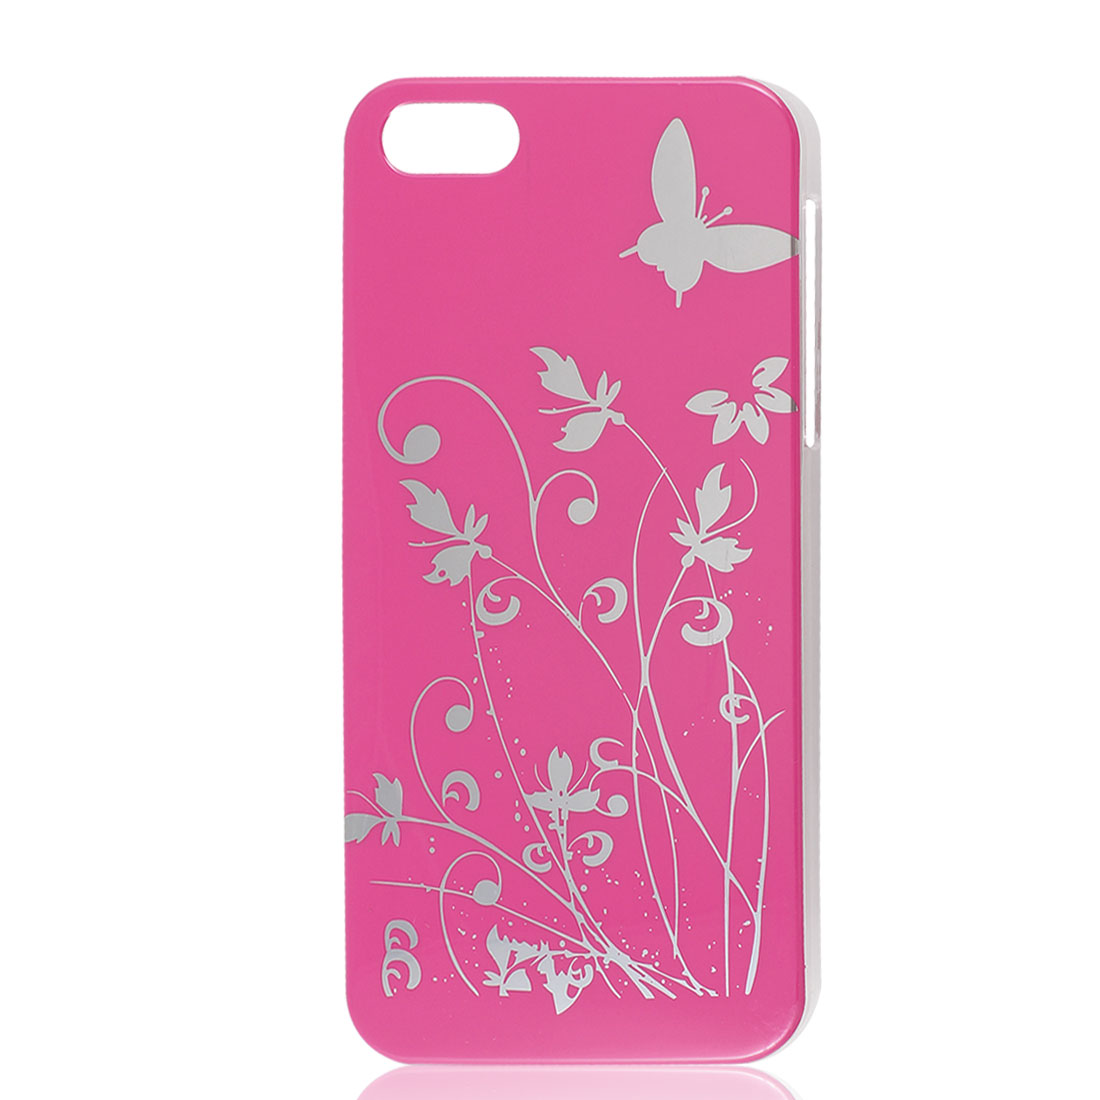 Floral Butterfly Design Fuchsia Hard Back Case Cover for iPhone 5 5G 5th